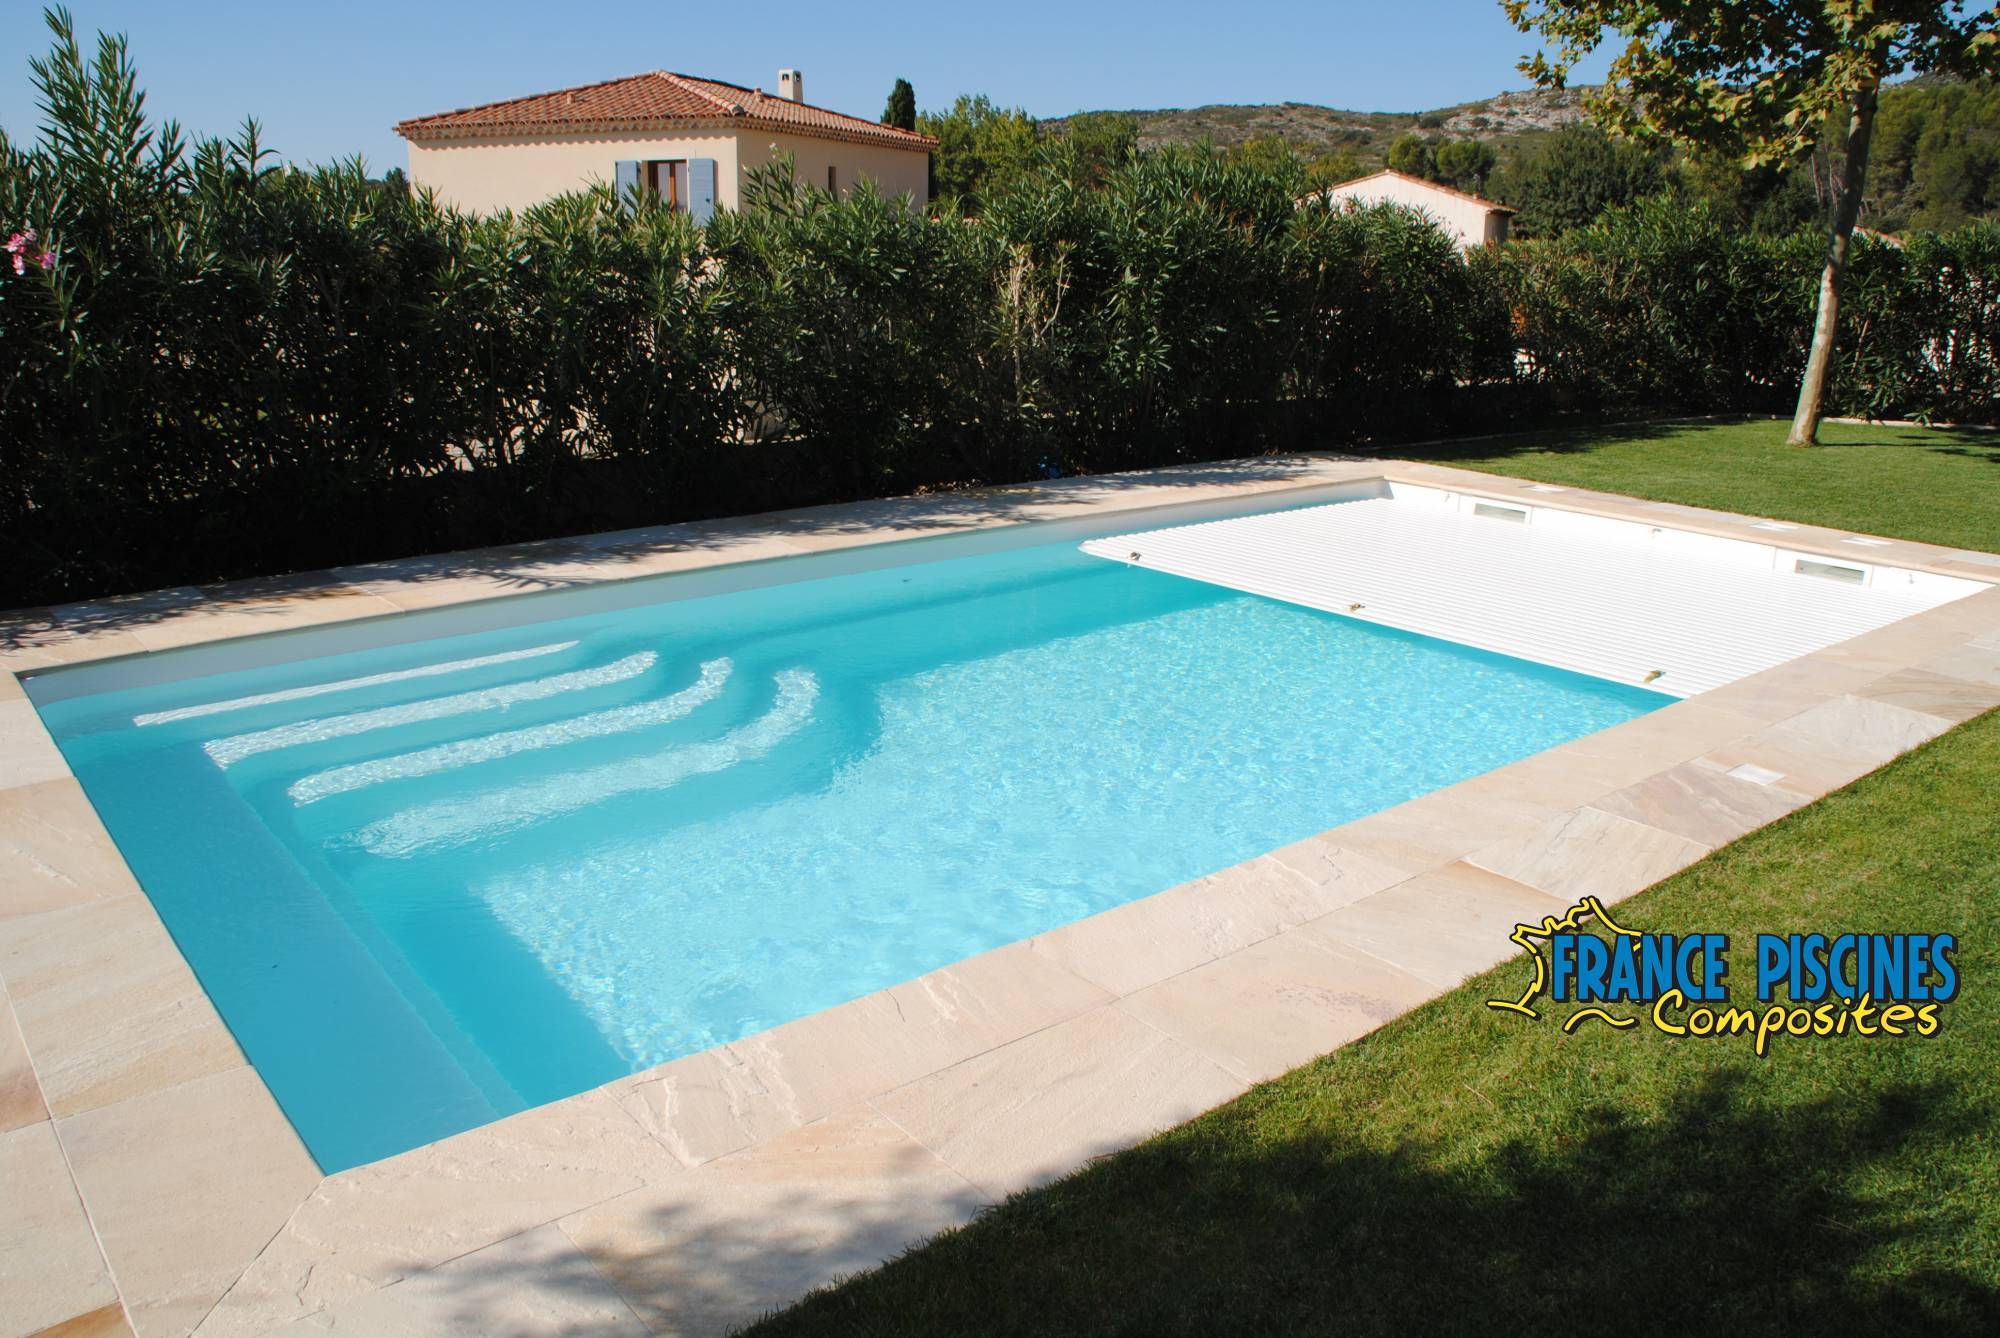 Vente et pose de piscine enterr e coque polyester for Achat piscine coque